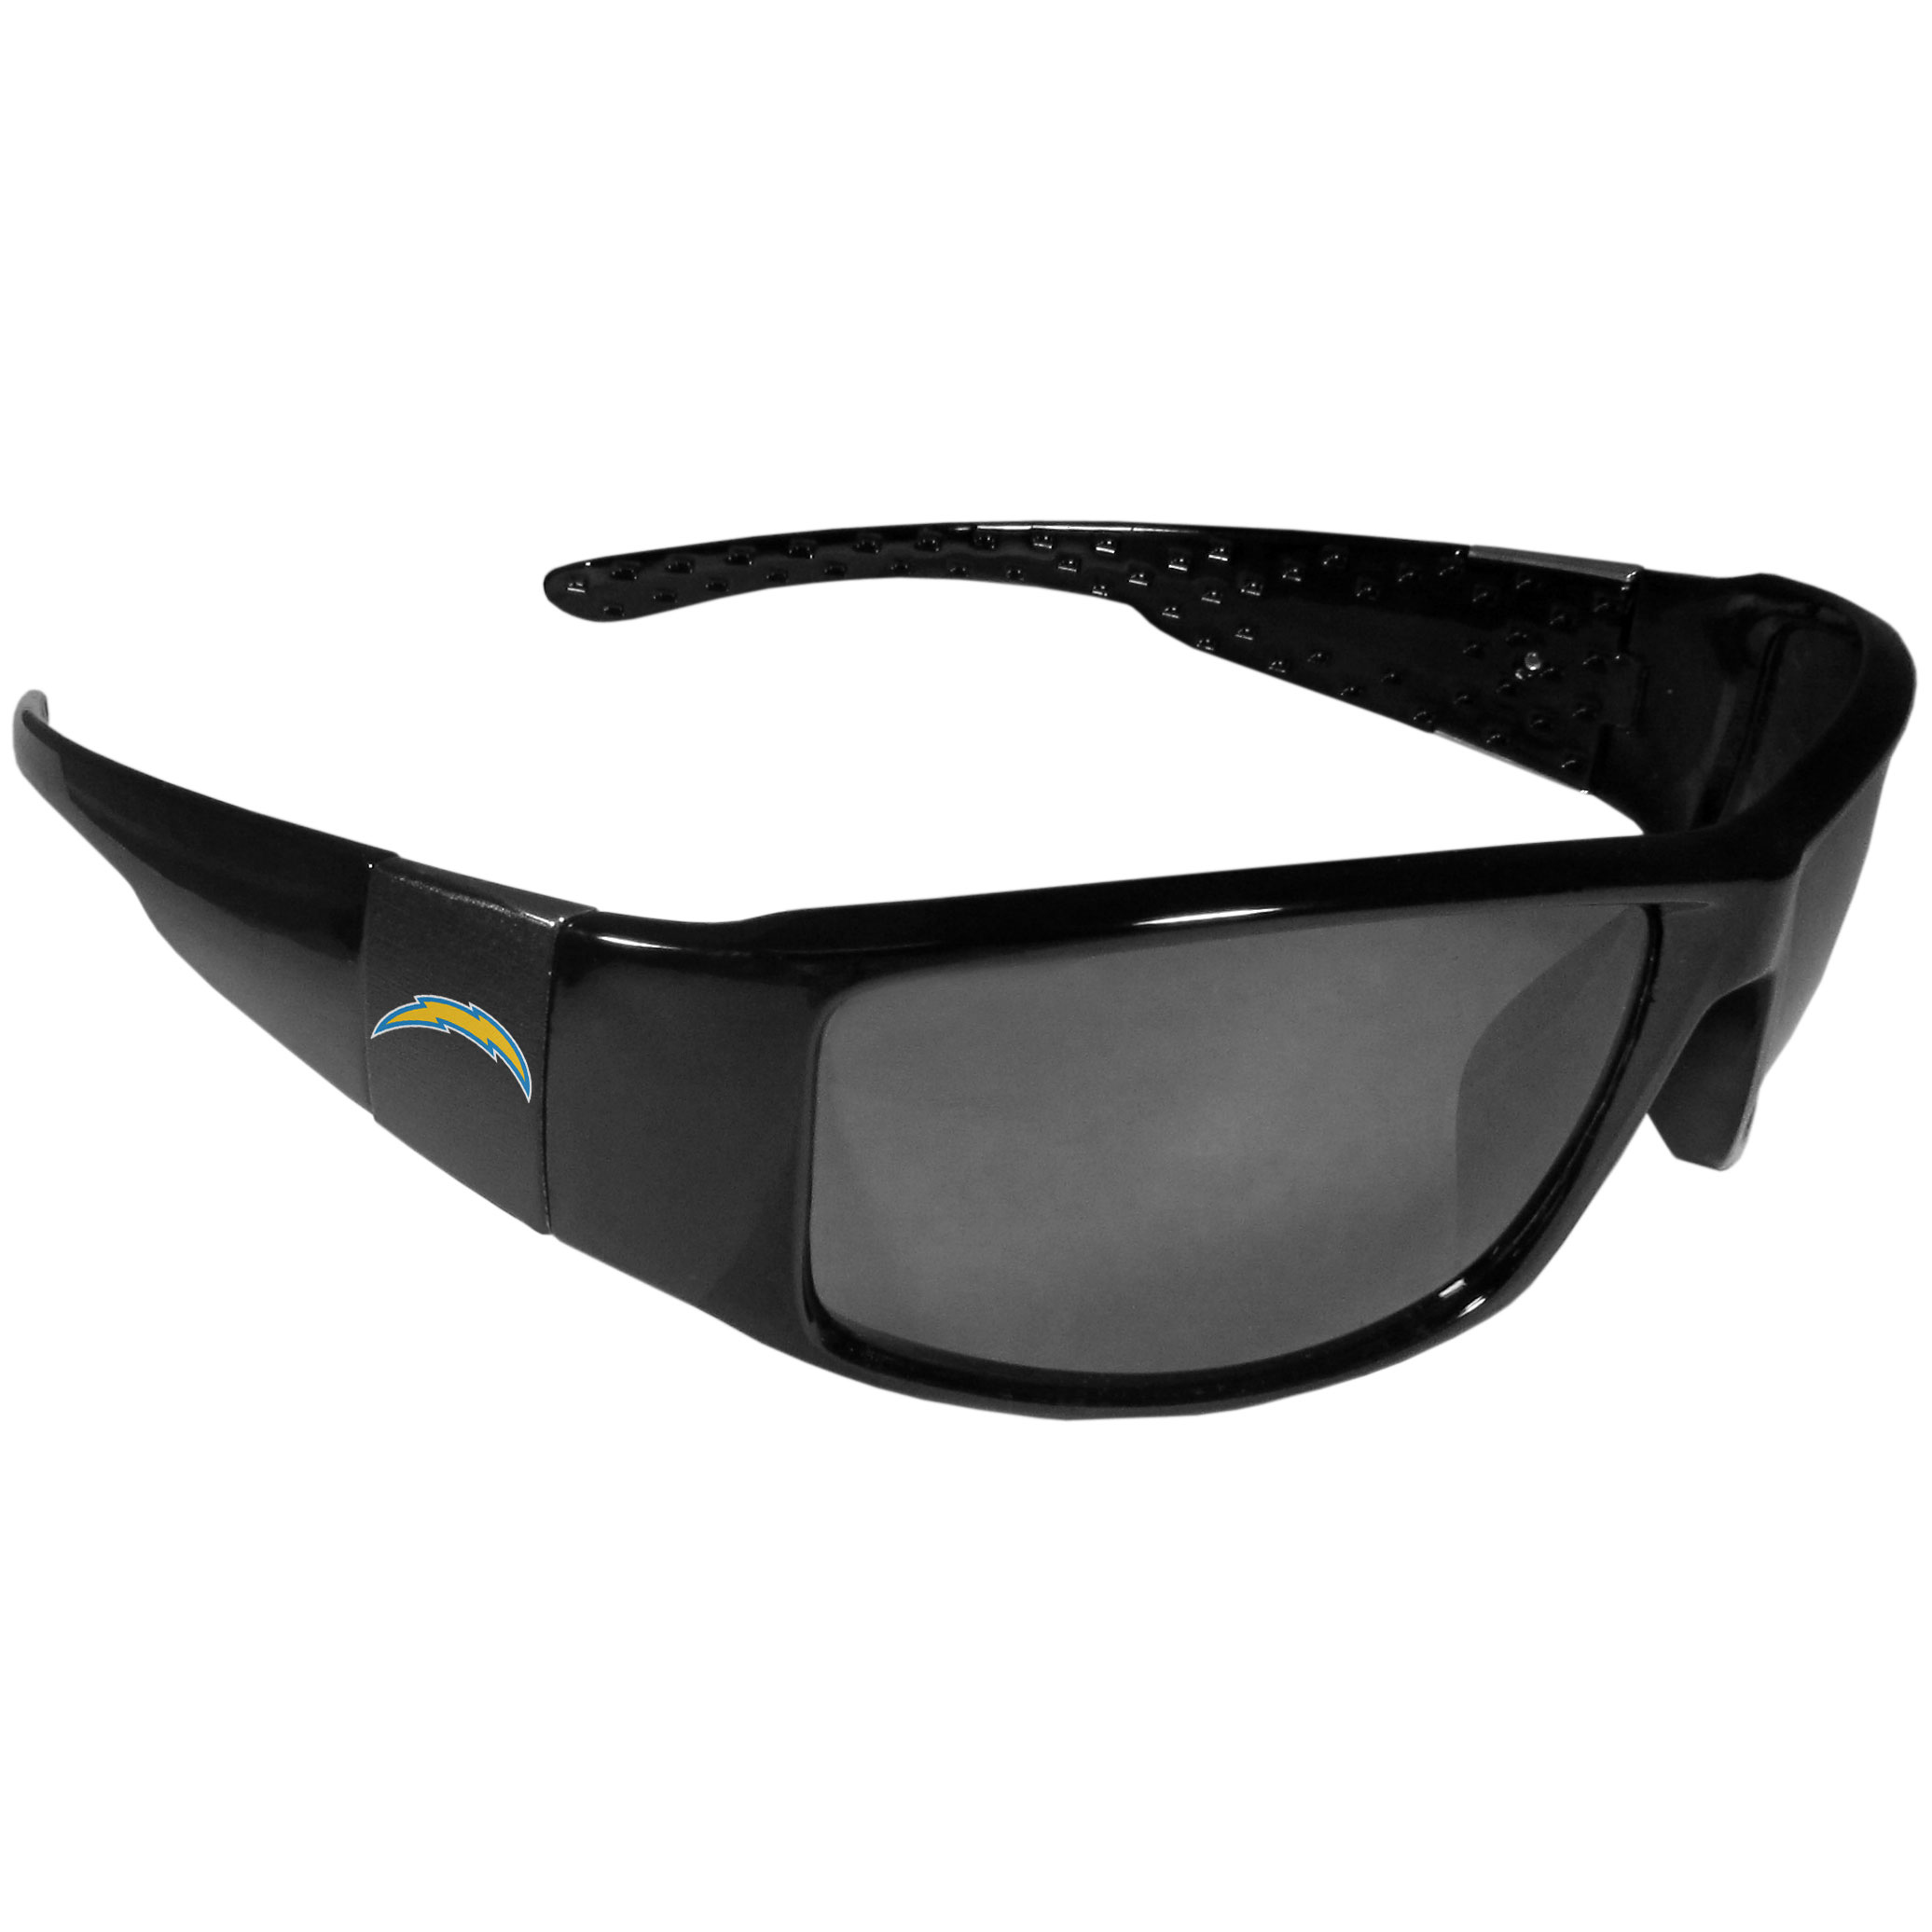 Los Angeles Chargers Black Wrap Sunglasses - These designer inspired frames have a sleek look in all black with  Los Angeles Chargers shields on each arm with a printed logo. The shades are perfect for any outdoor activity like; golfing, driving, hiking, fishing or cheering on the team at a tailgating event or at a home game day BBQ with a lens rating of 100% UVA/UVB for maximum UV protection. The high-quality frames are as durable as they are fashionable and with their classic look they are the perfect fan accessory that can be worn everyday for every occasion.